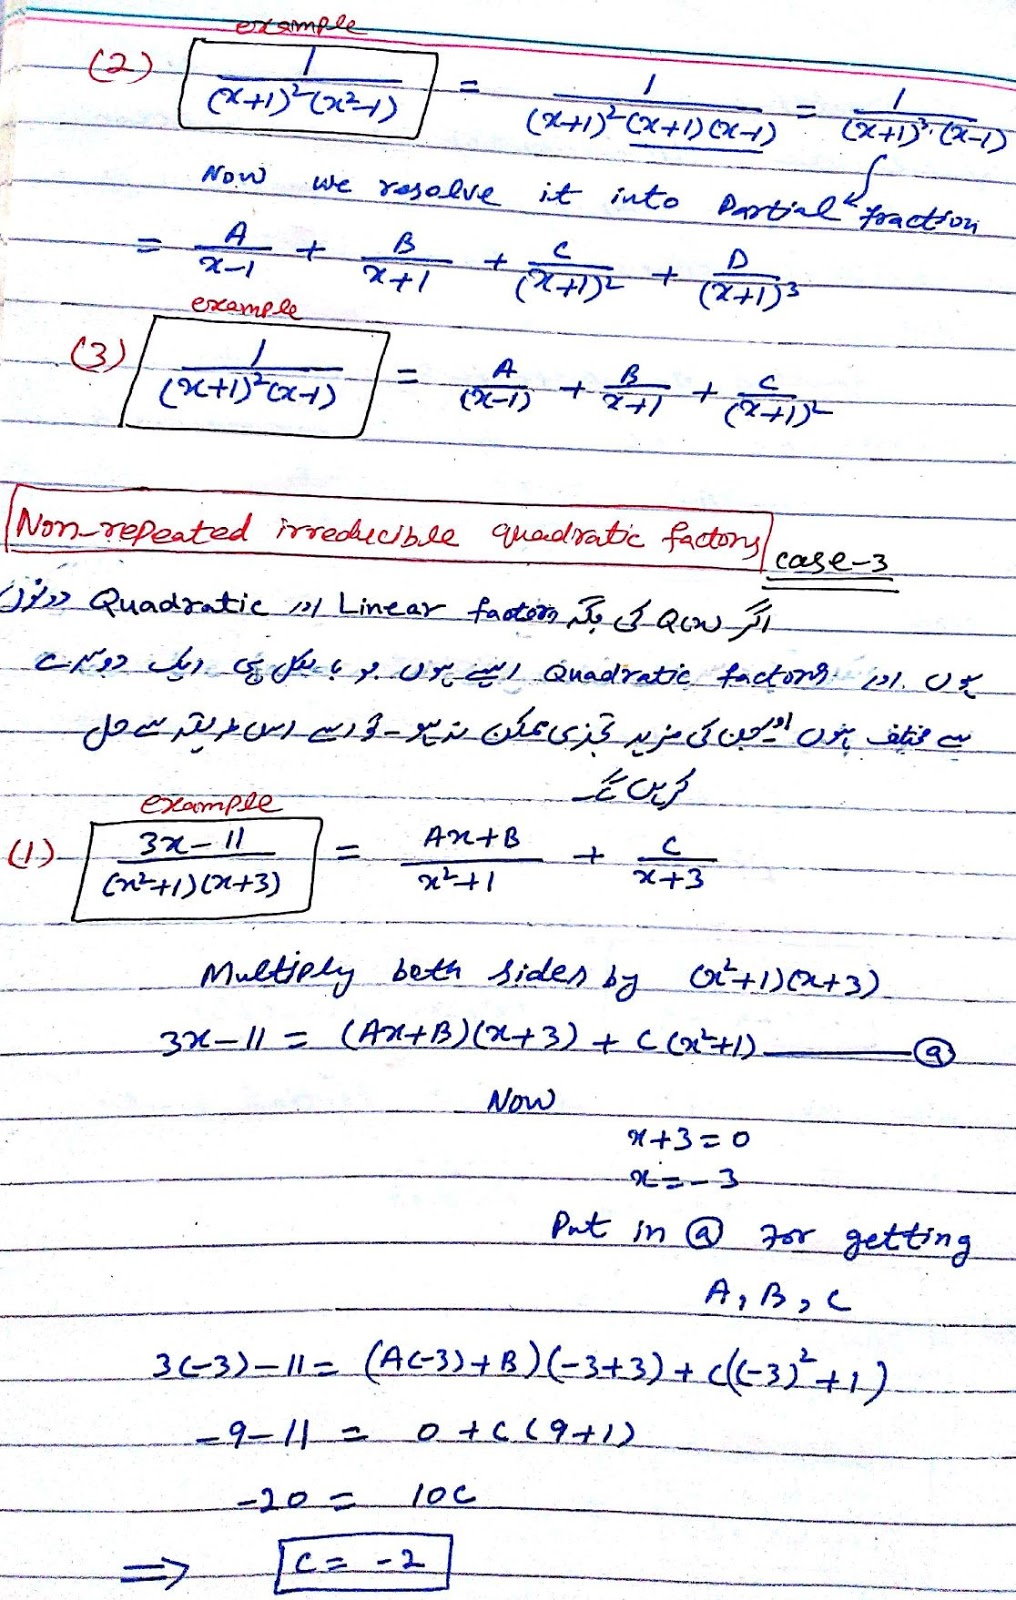 partial fractions calculator,basic mathematics in urdu,mathematics in urdu language,magic tricks in urdu book free download,real magic tricks in urdu,basic math in urdu language,learn mathematics in urdu,magic book in urdu pdf download,math magic tricks in urdu,math tricks in urdu pdf,mathematics in urdu language,basic mathematics in urdu,math magic tricks in urdu,basic math in urdu language,learn math in urdu,urdu maths vocabulary,definition of mathematics in urdu,partial fraction formula,partial fractions repeated roots,partial fractions integration,partial fractions examples and solutions,partial fraction expansion,partial fractions decomposition,partial fractions examples,partial fraction method,partial fractions repeated roots,partial fractions examples and solutions,partial fractions integration,improper partial fractions